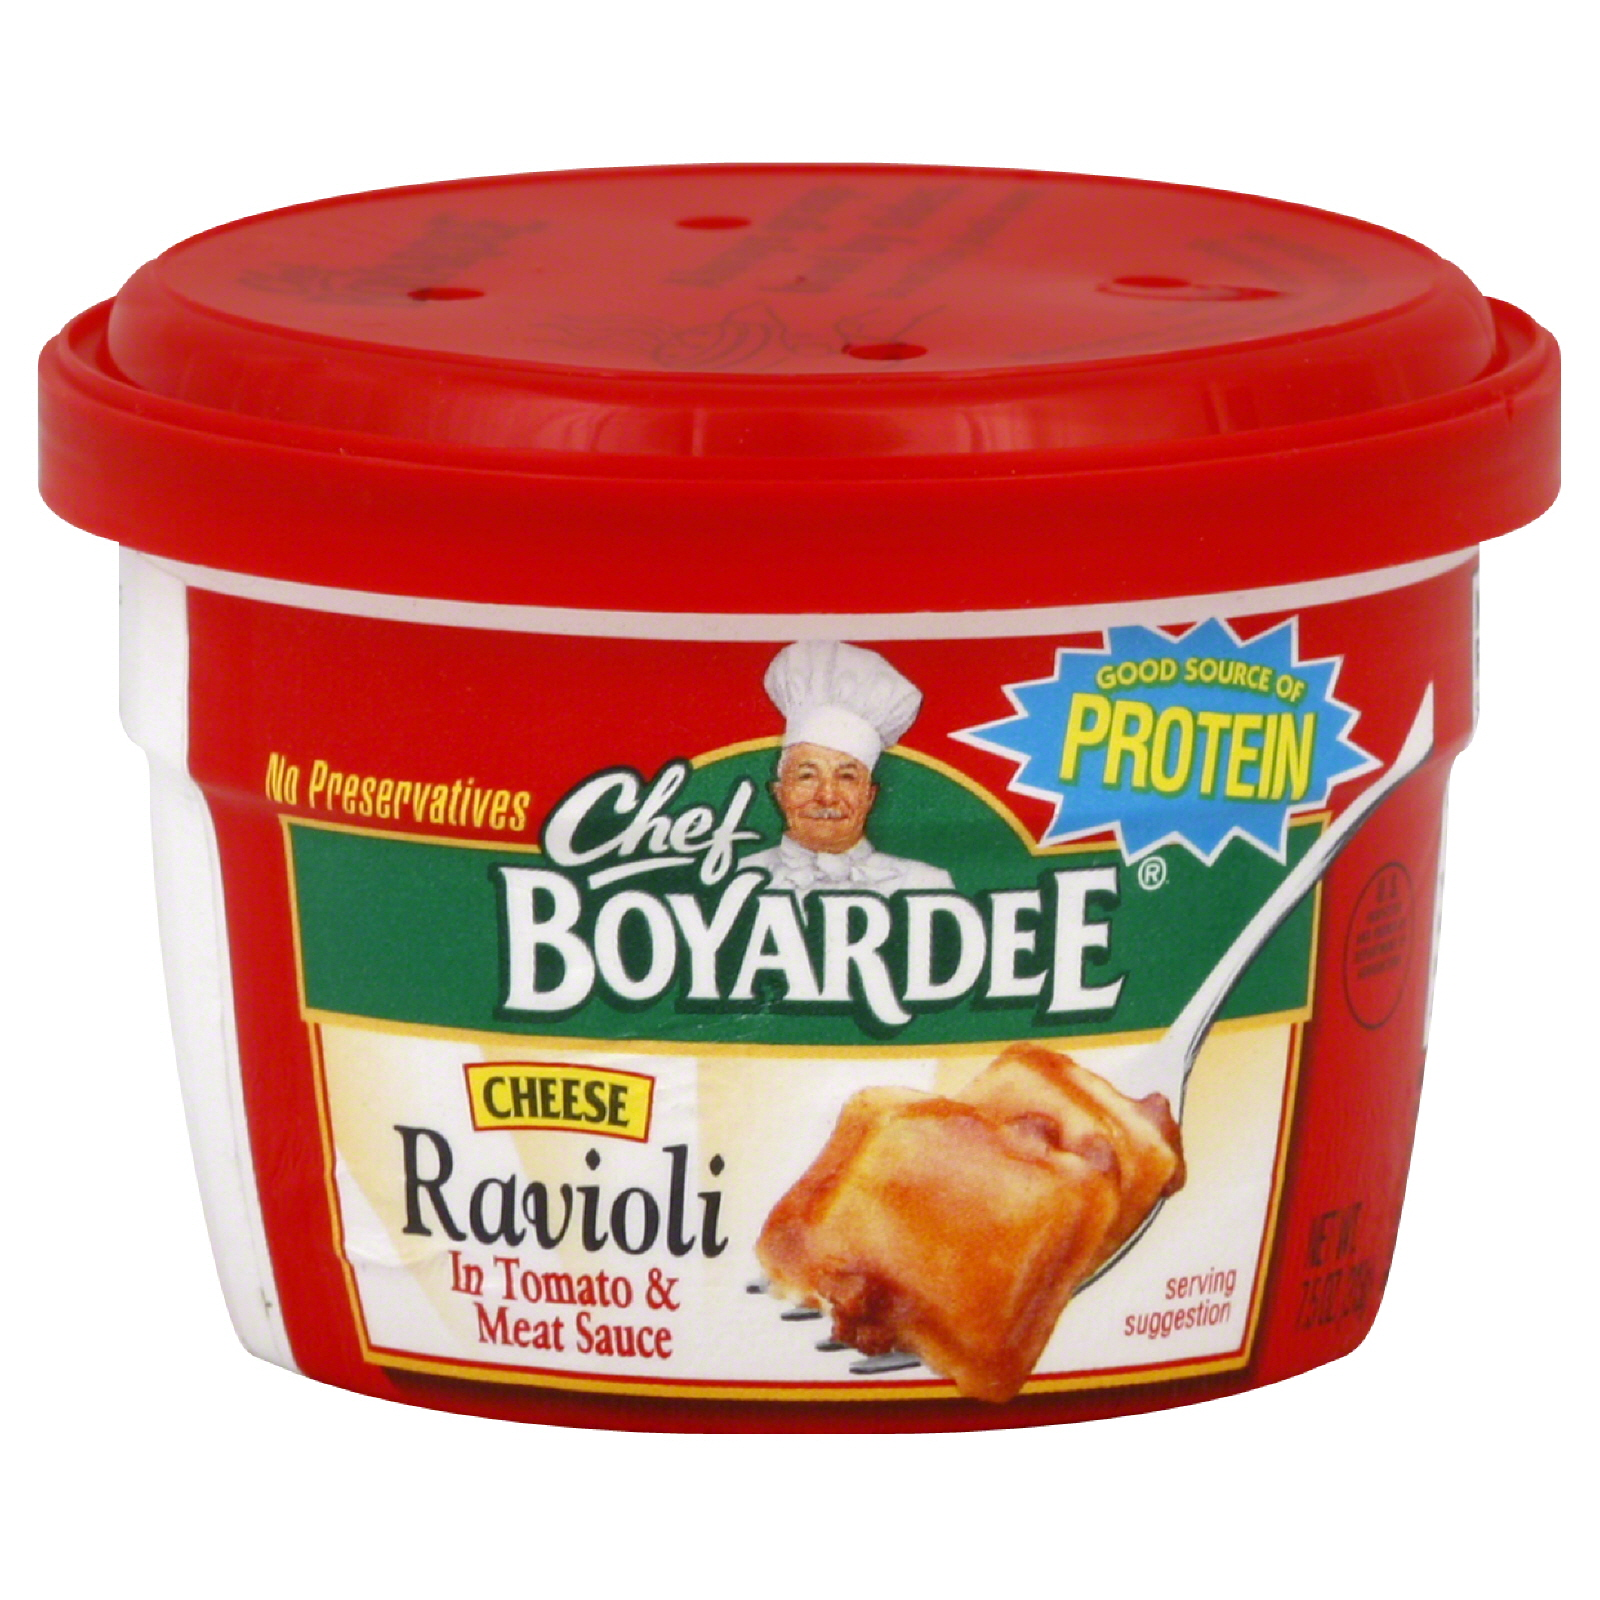 Delicious and convenient, Chef Boyardee Cheese Ravioli in Tomato Sauce has the real ingredients and rich flavor that you'll love. Chef Boyardee uses real cheese, enriched pasta, and a robust tomato sauce to give Cheese Ravioli in Tomato Sauce the classic taste that your family will .